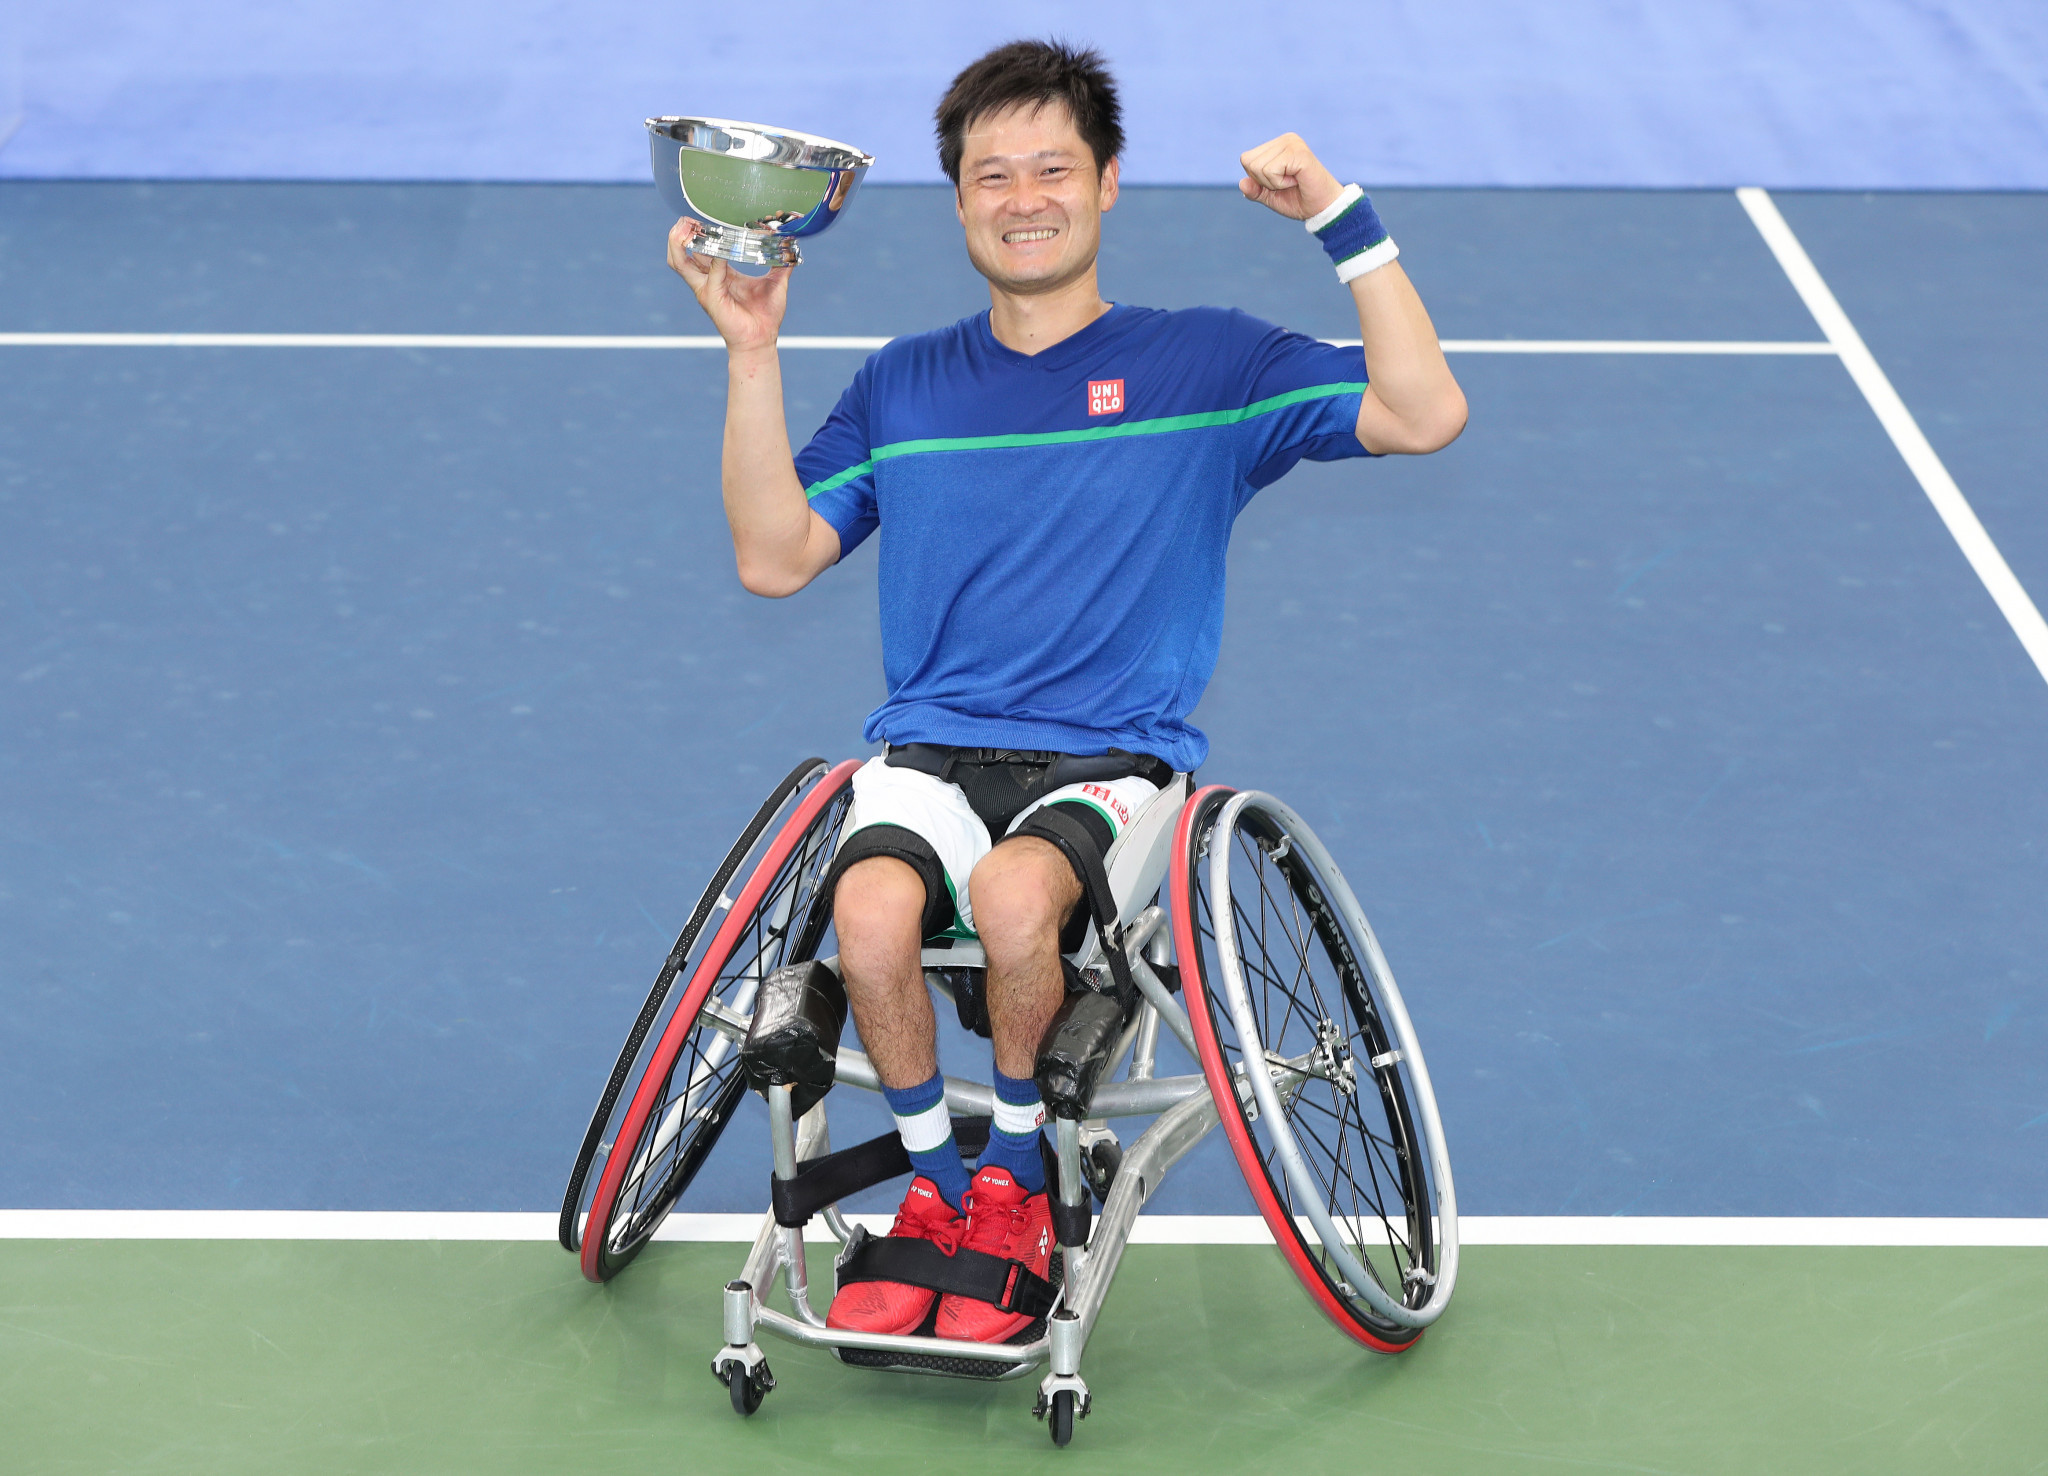 US Open showed Tokyo 2020 can be held safely, claims Japanese wheelchair tennis star